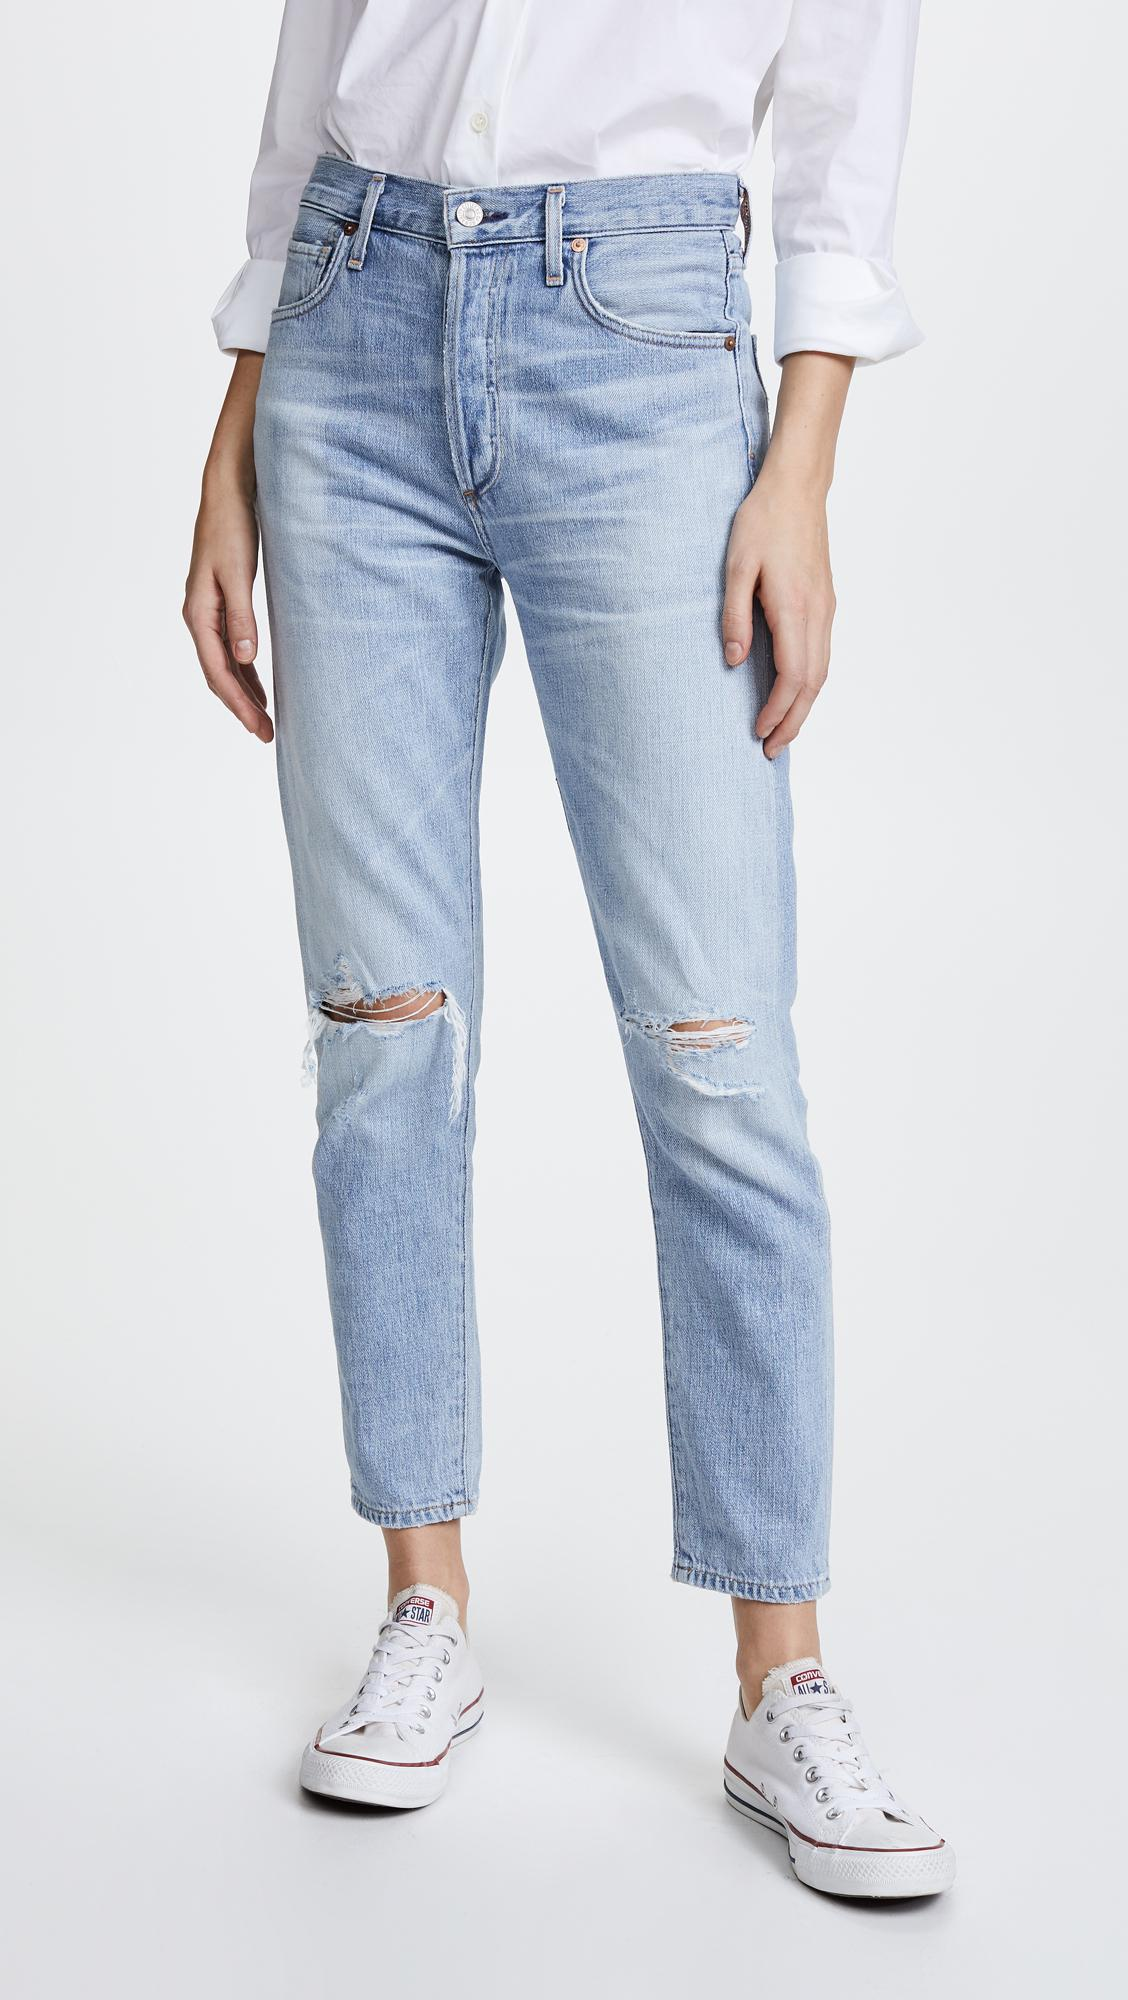 Liya cropped tapered jeans - Blue Citizens Of Humanity eDBxyiHXK9